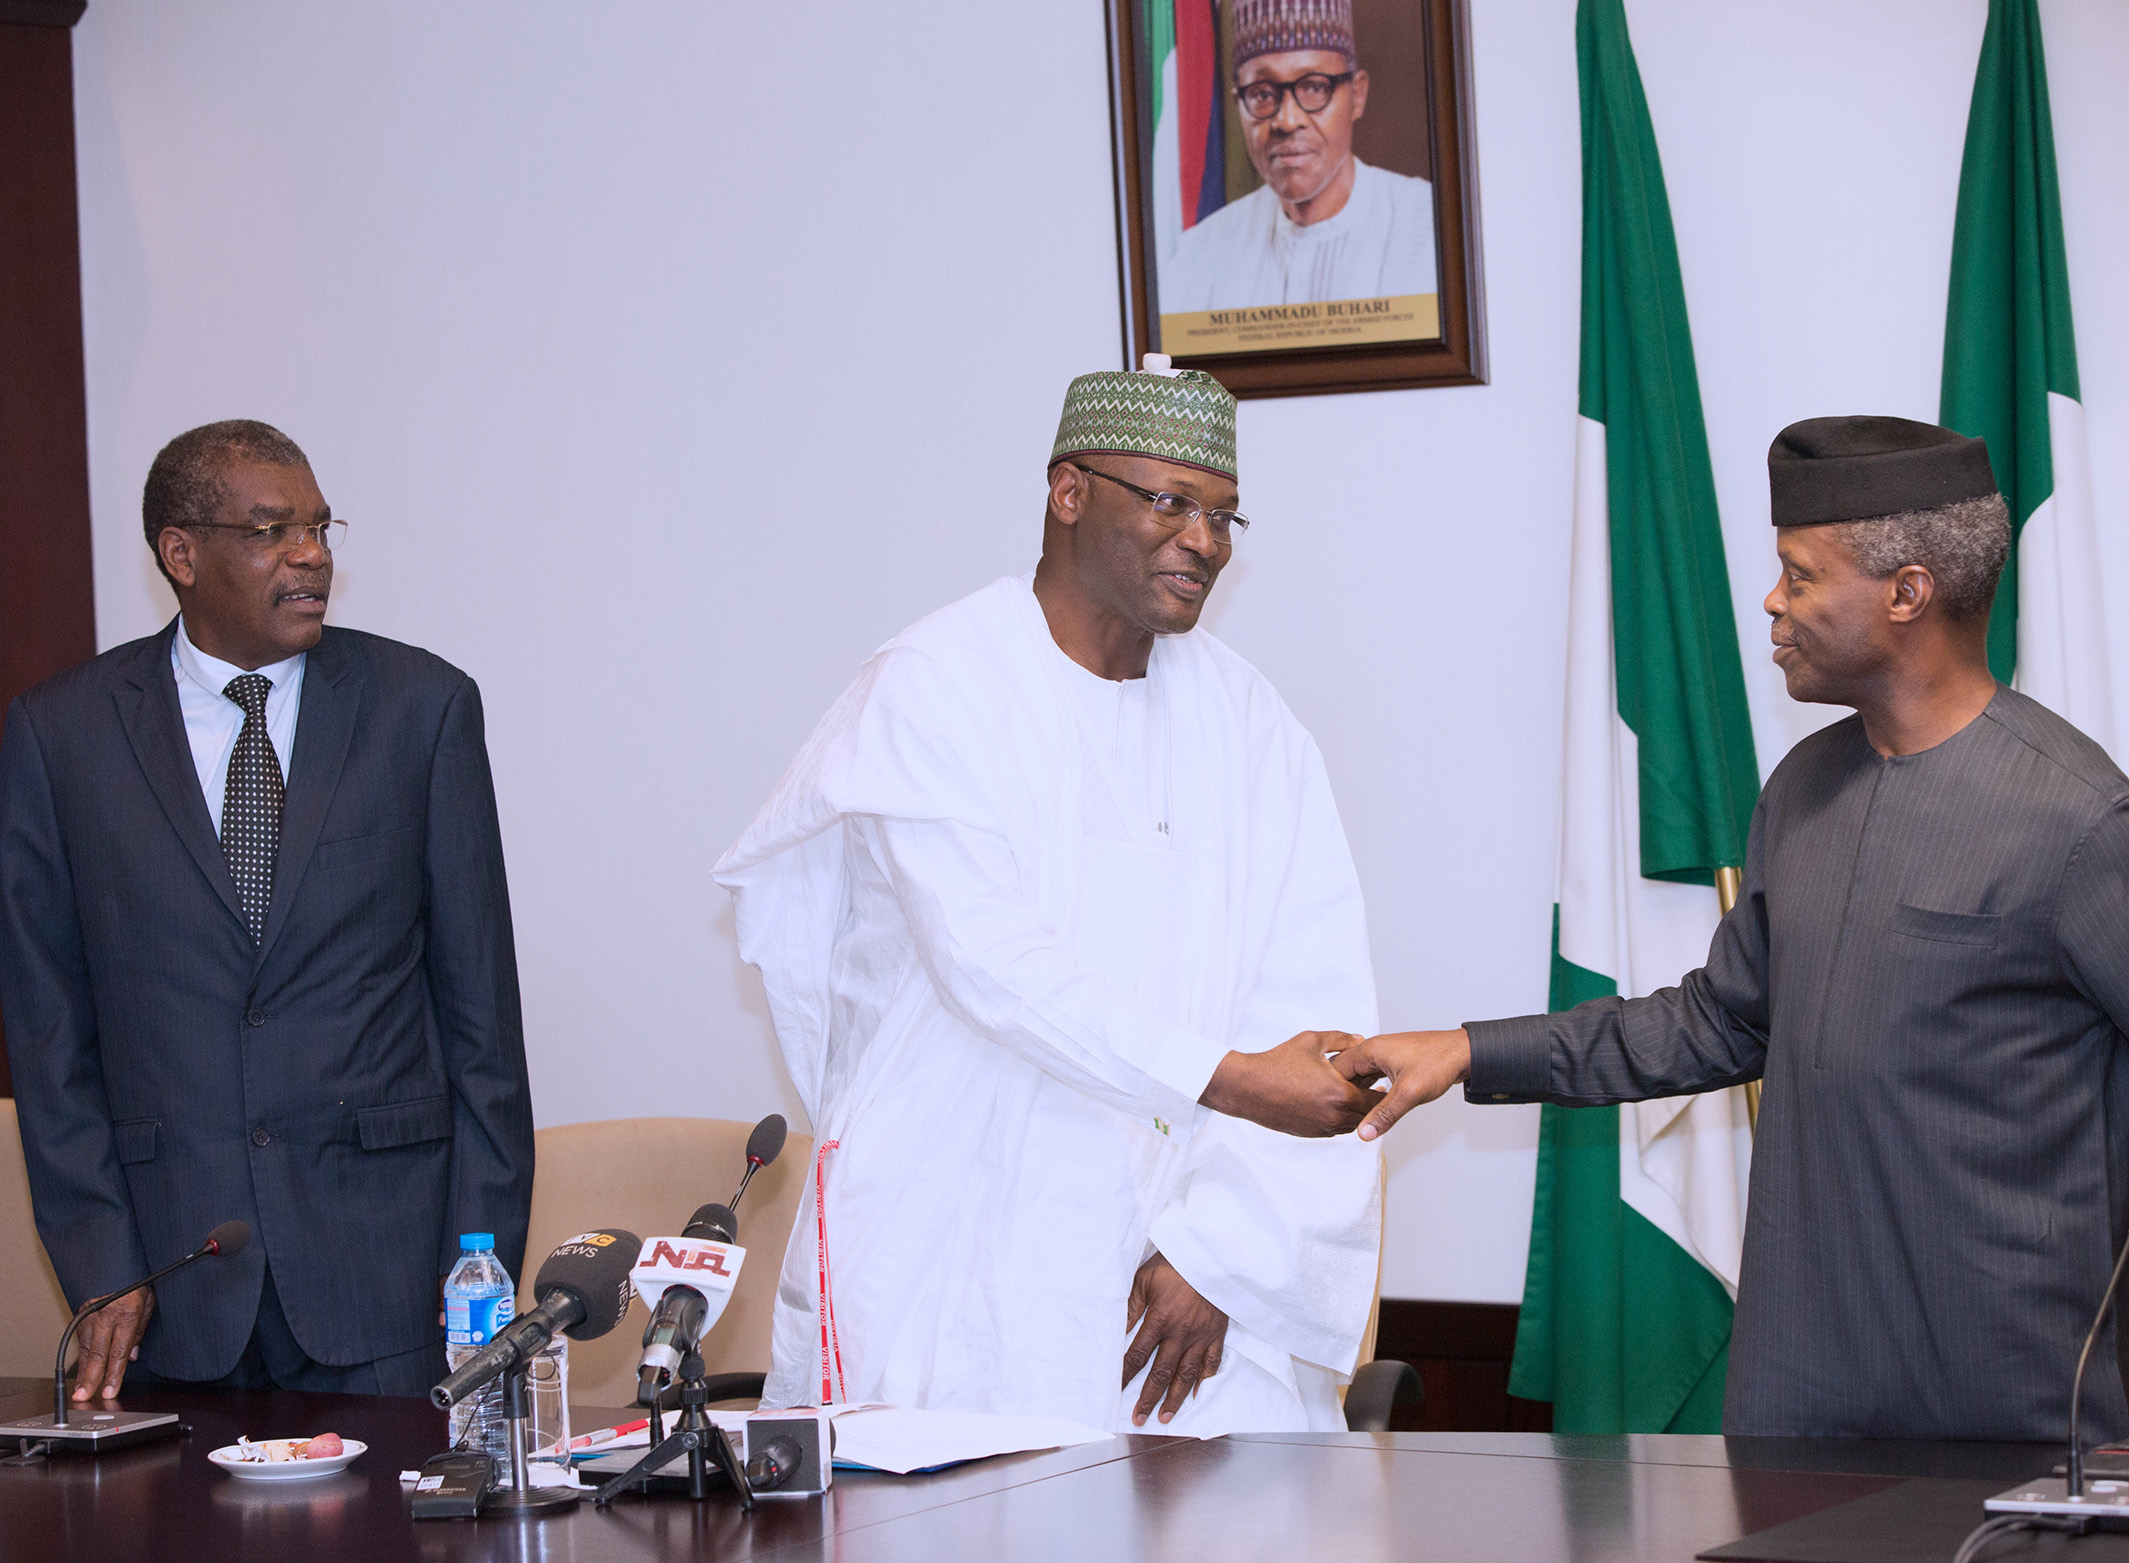 AG PRESIDENT OSINBAJO RECEIVES ECONEC 1A&B. R-L; Acting President Yemi Osinbajo, Chairman INEC Nigeria Professor Mahmood Yakubu and Chairman of the Electoral Commission of Benin Republic during a courtesy visit of ECOWAS NETWORK OF ELECTORAL COMMISSION (ECONEC) at the State House in Abuja. PHOTO; SUNDAY AGHAEZE/STATE HOUSE. JULY 7 2017